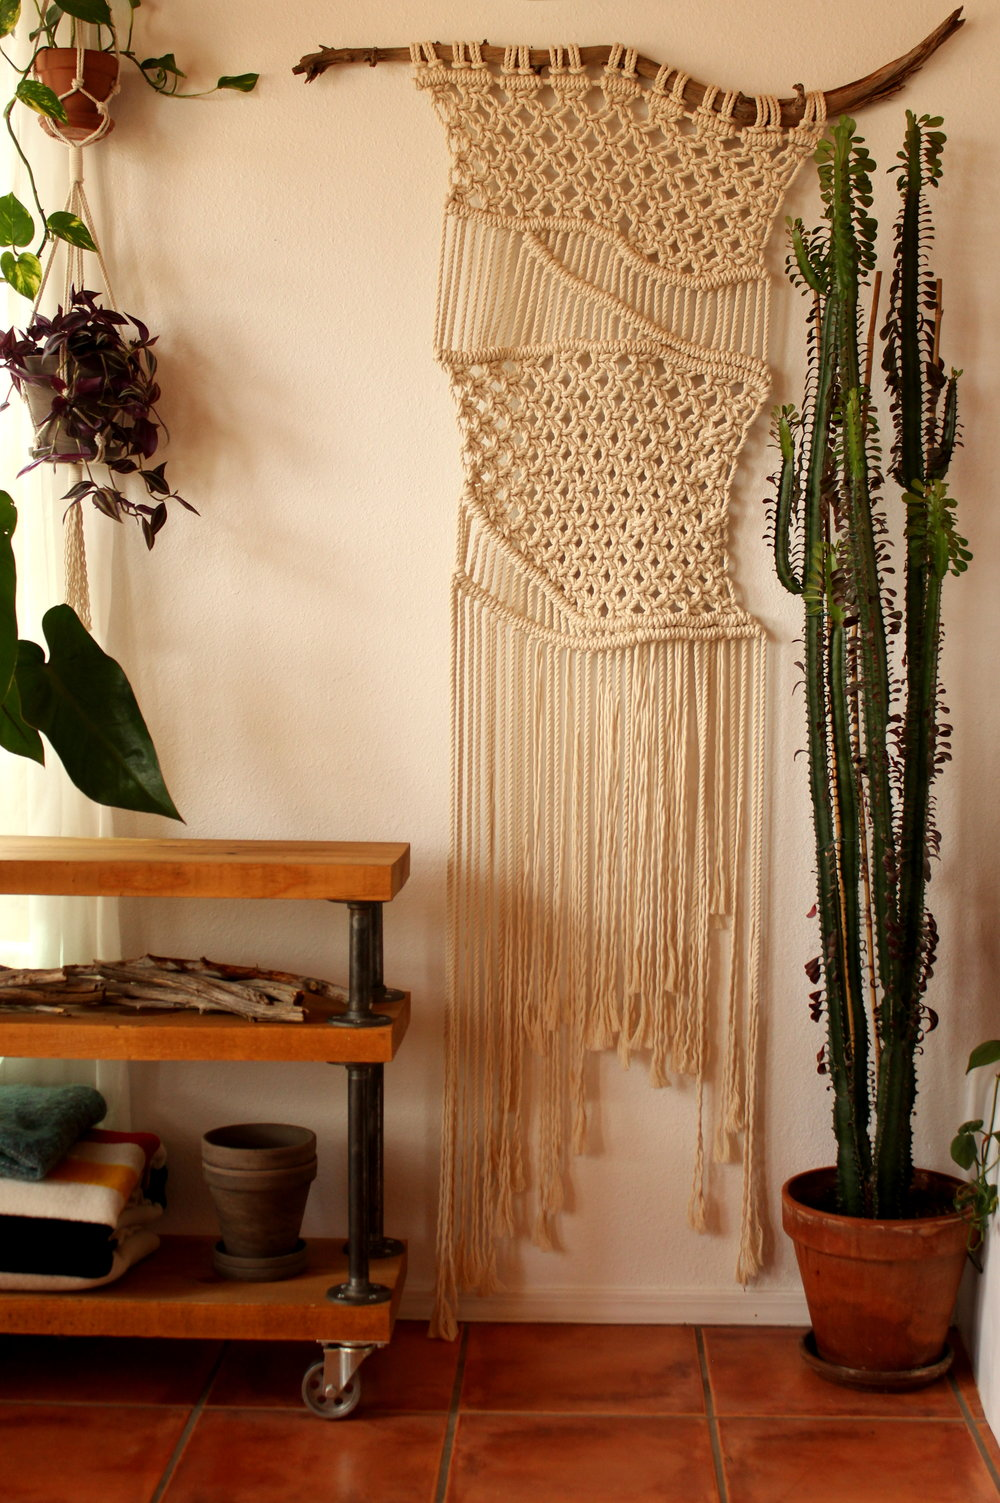 WILD STREAMS MACRAME WALL HANGING